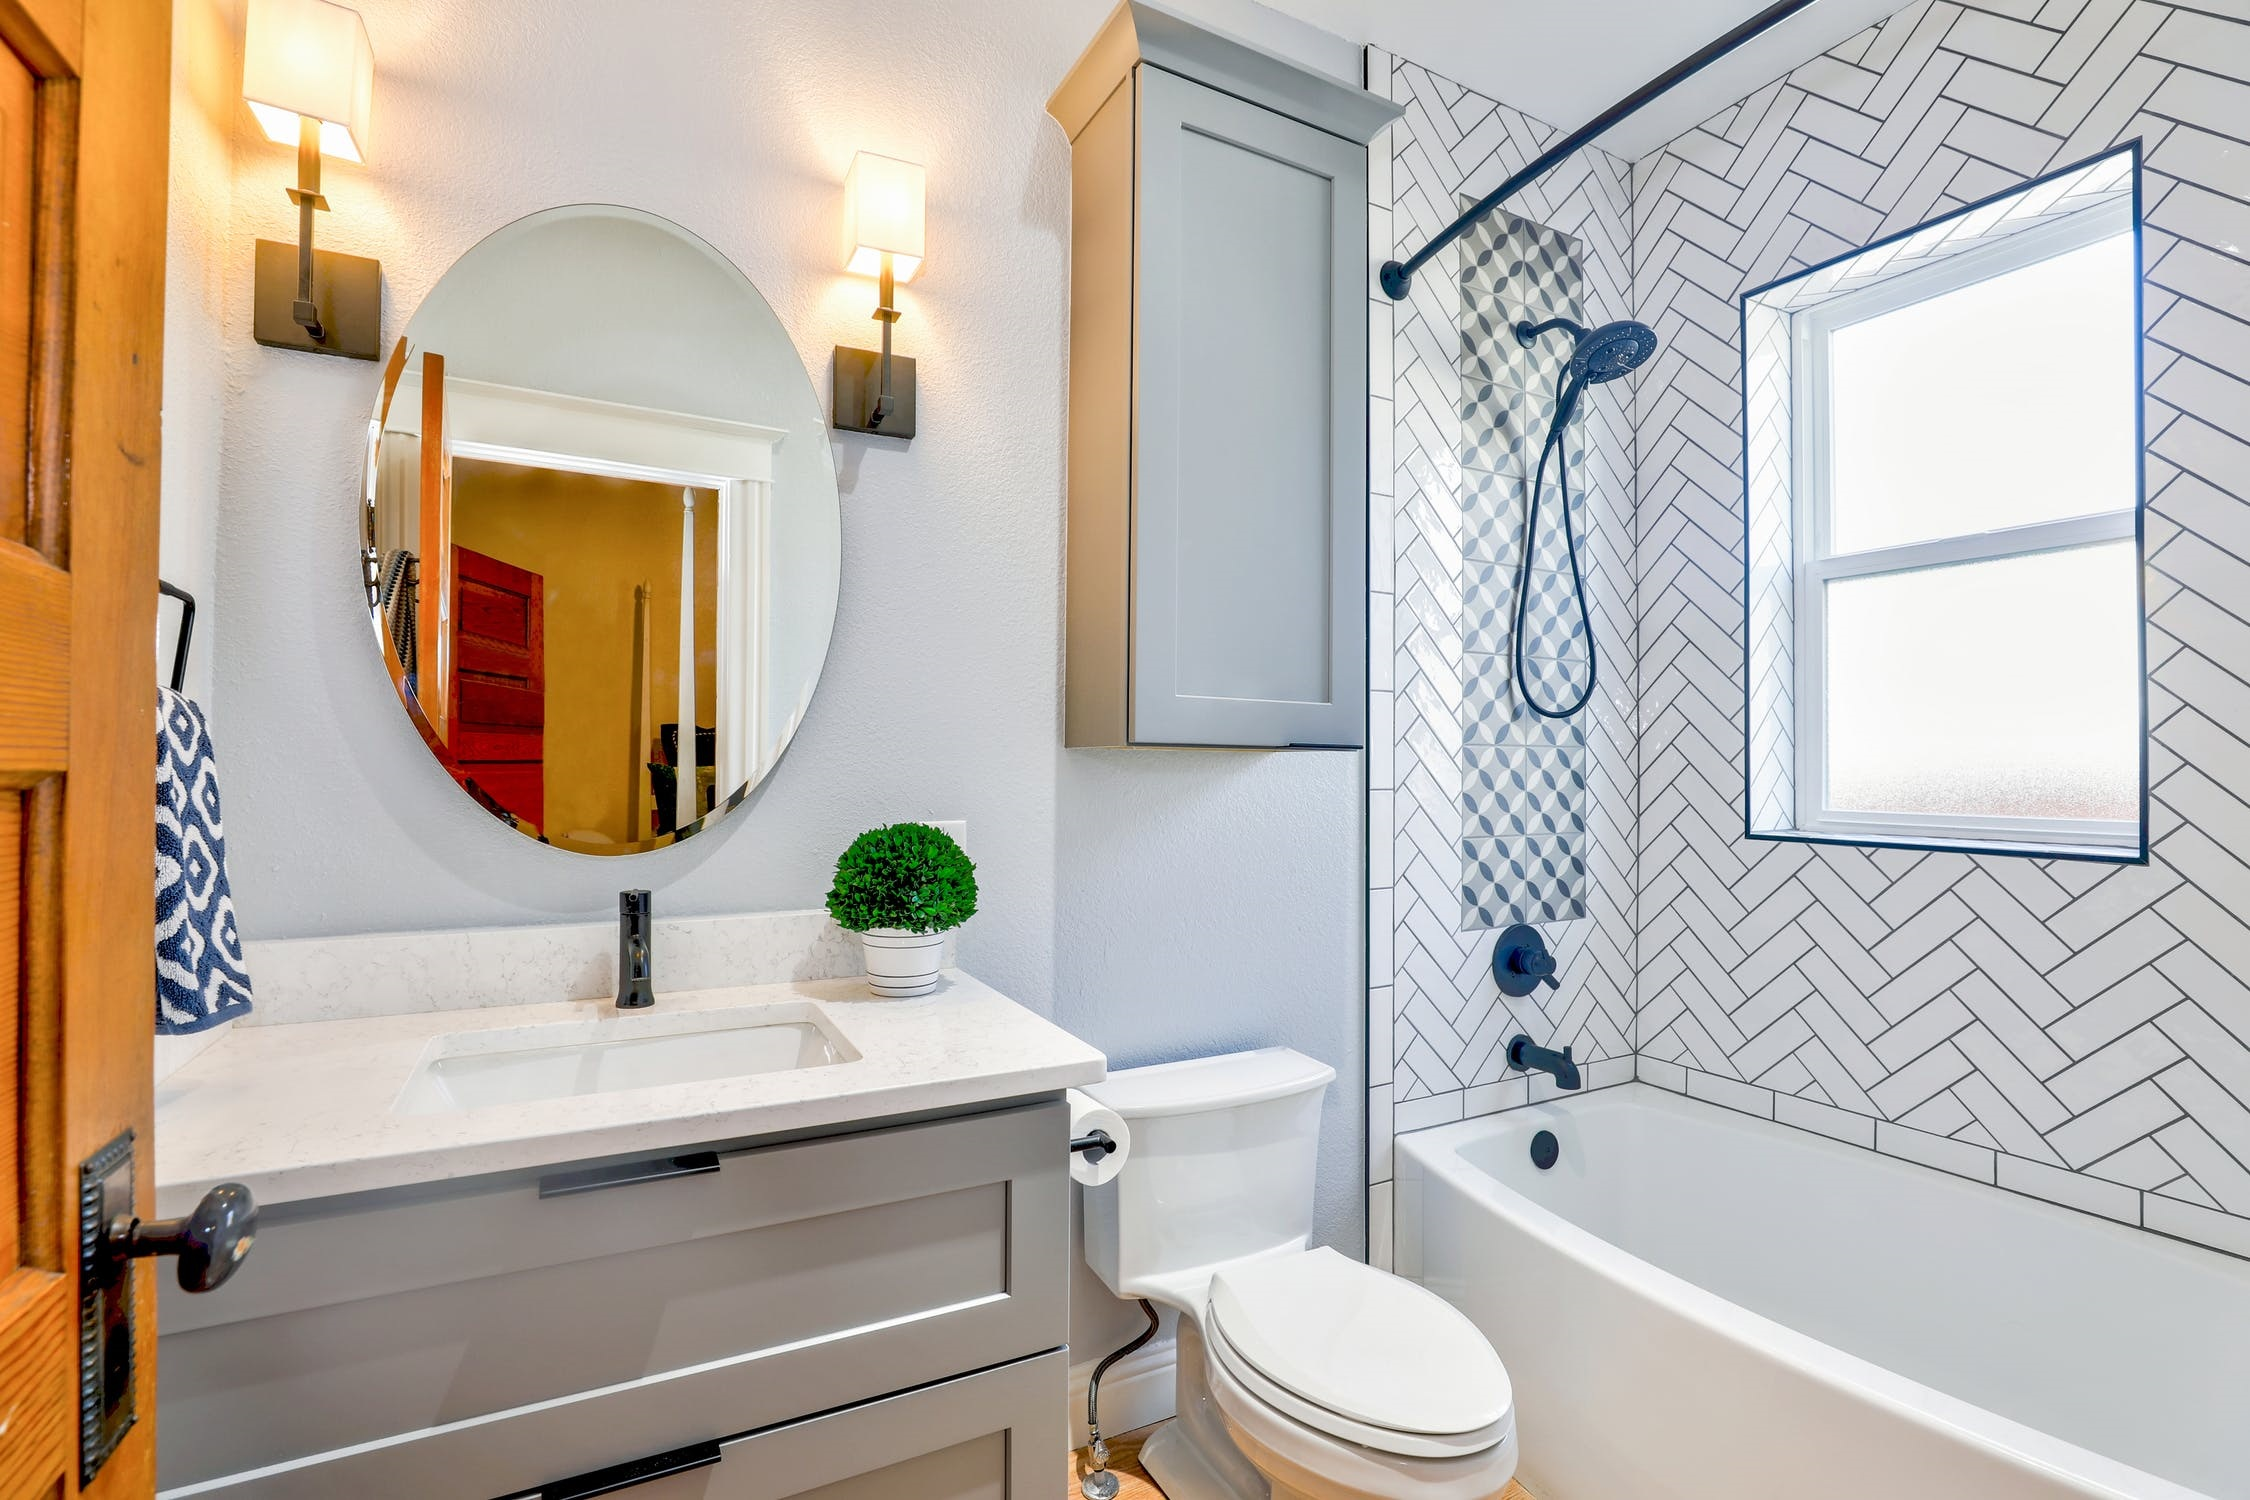 4 unique tile designs to consider for a